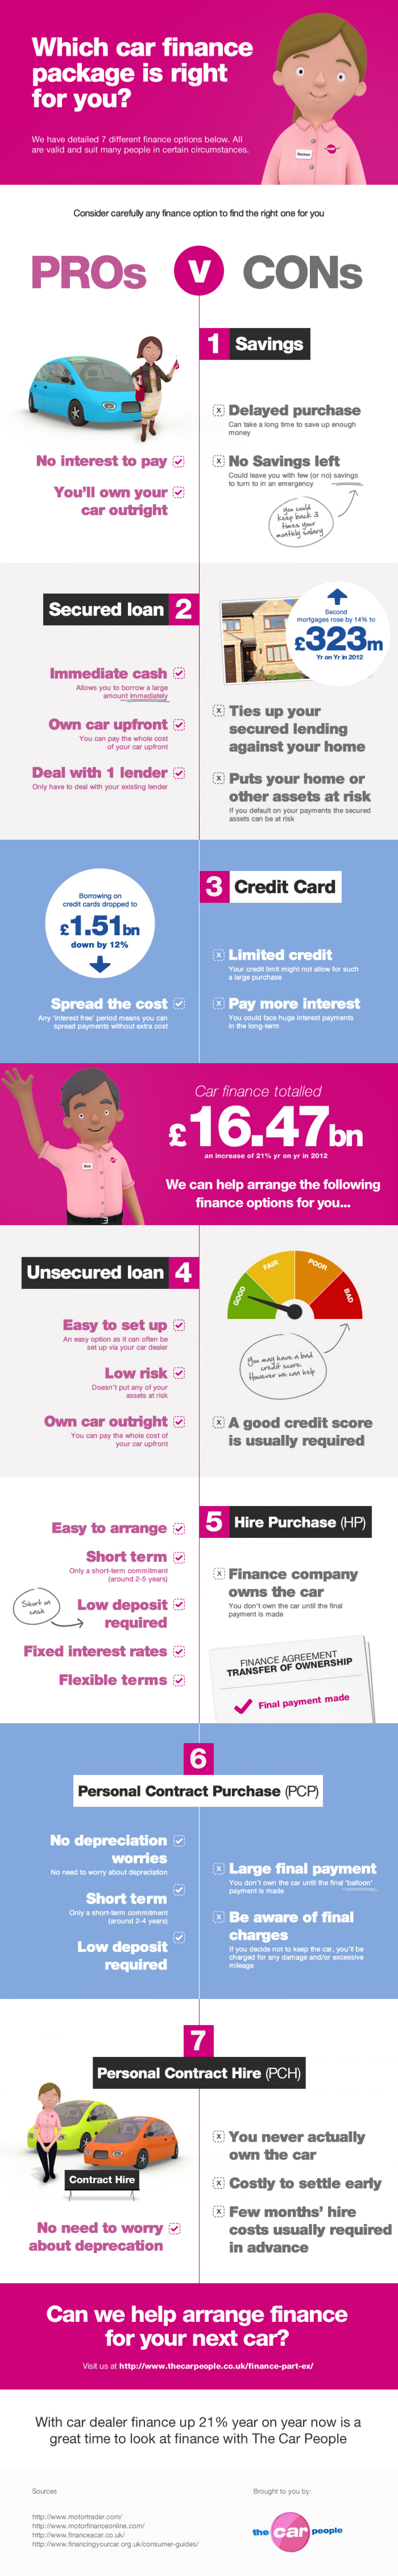 Which Car Finance Package is right for you? Infographic